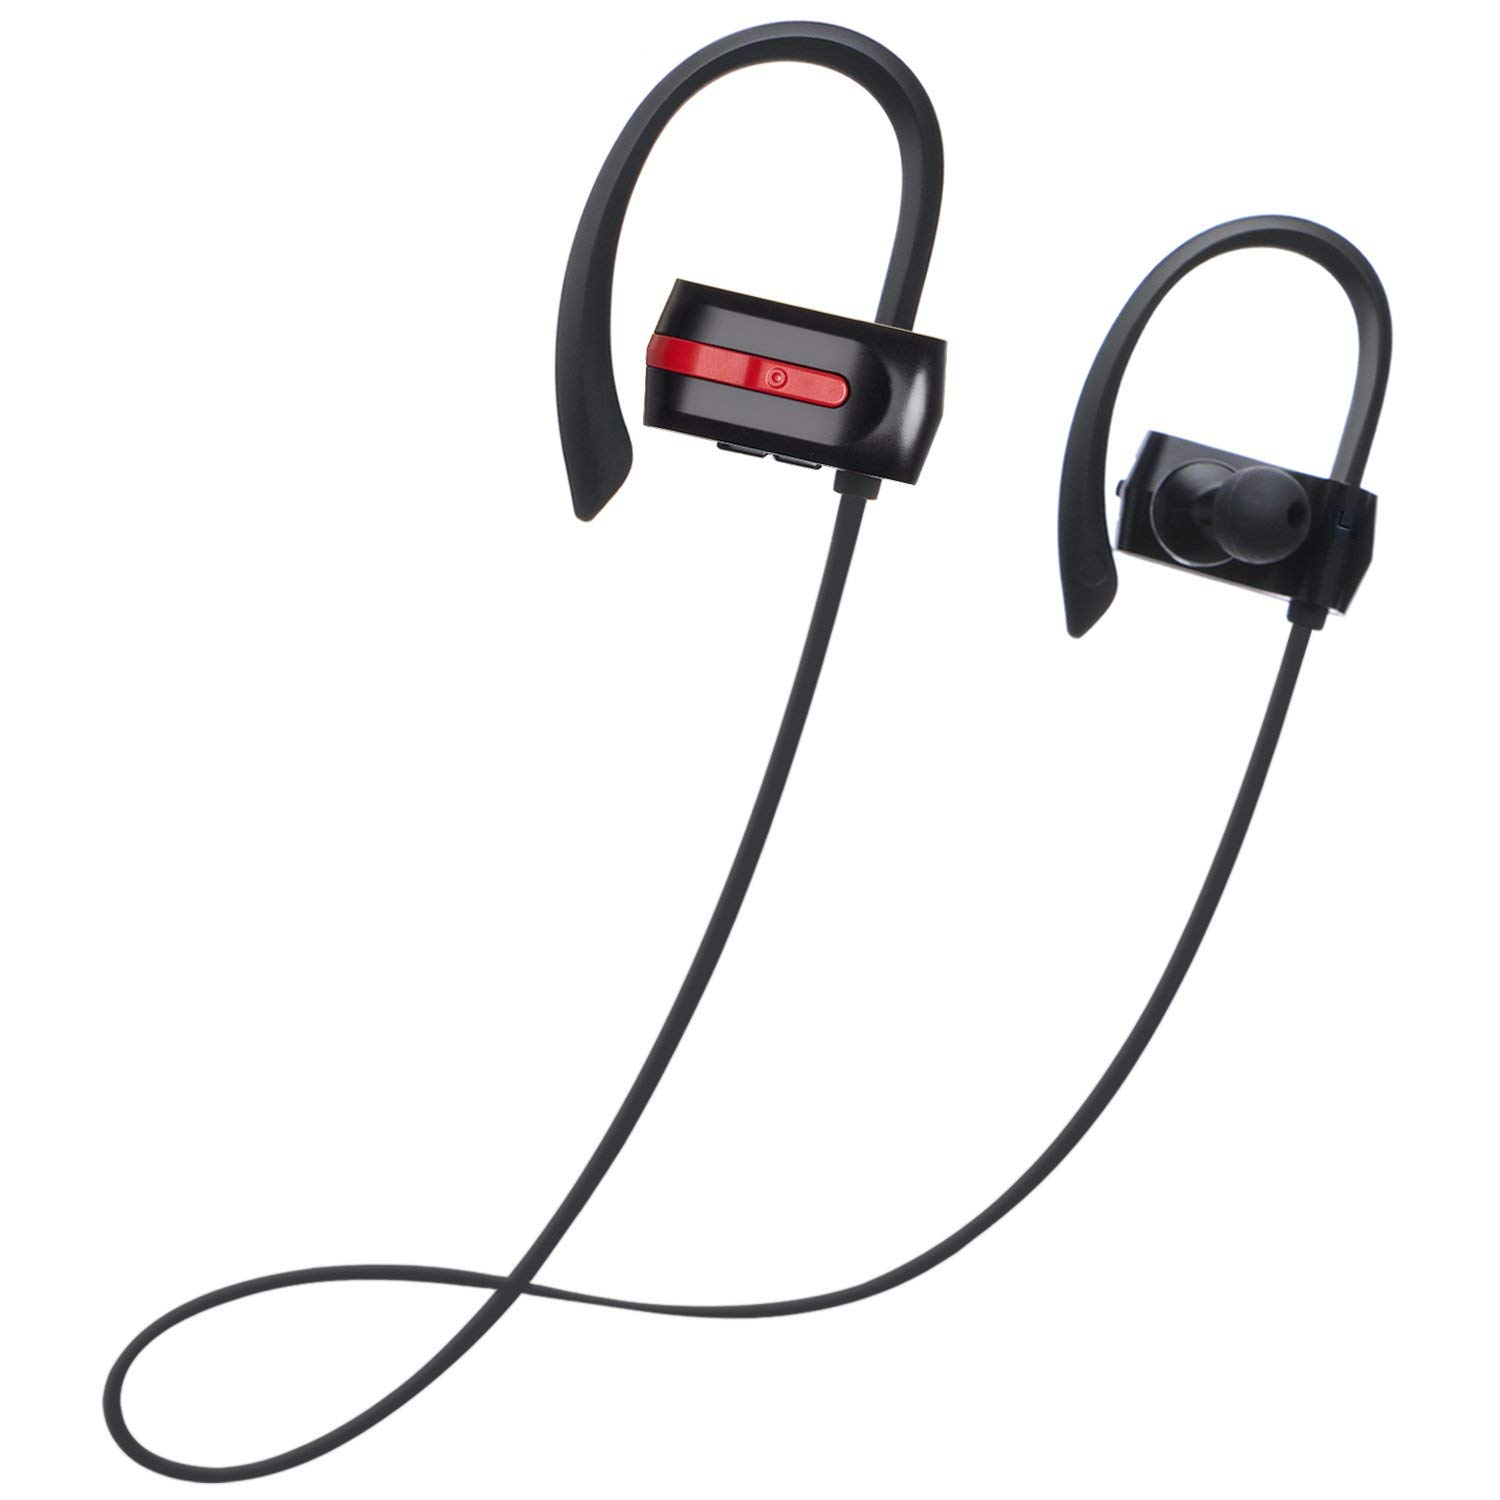 Bluetooth Headphones with Enhanced Bass,Nosie Isolating, Sweatproof